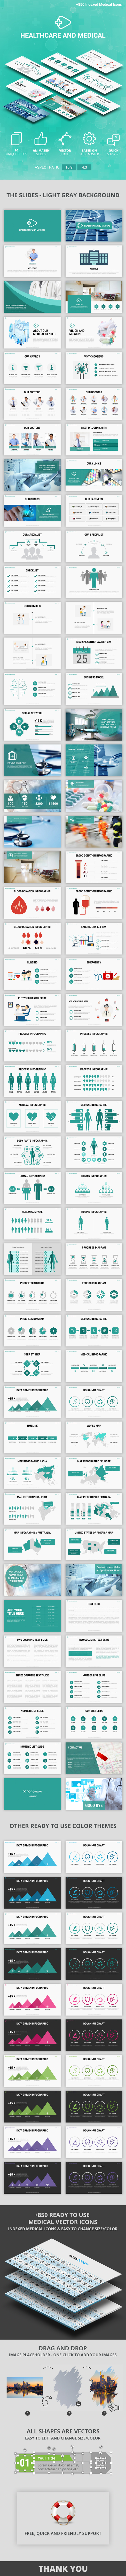 GraphicRiver Healthcare and Medical 2 Keynote Presentation Template 20312220